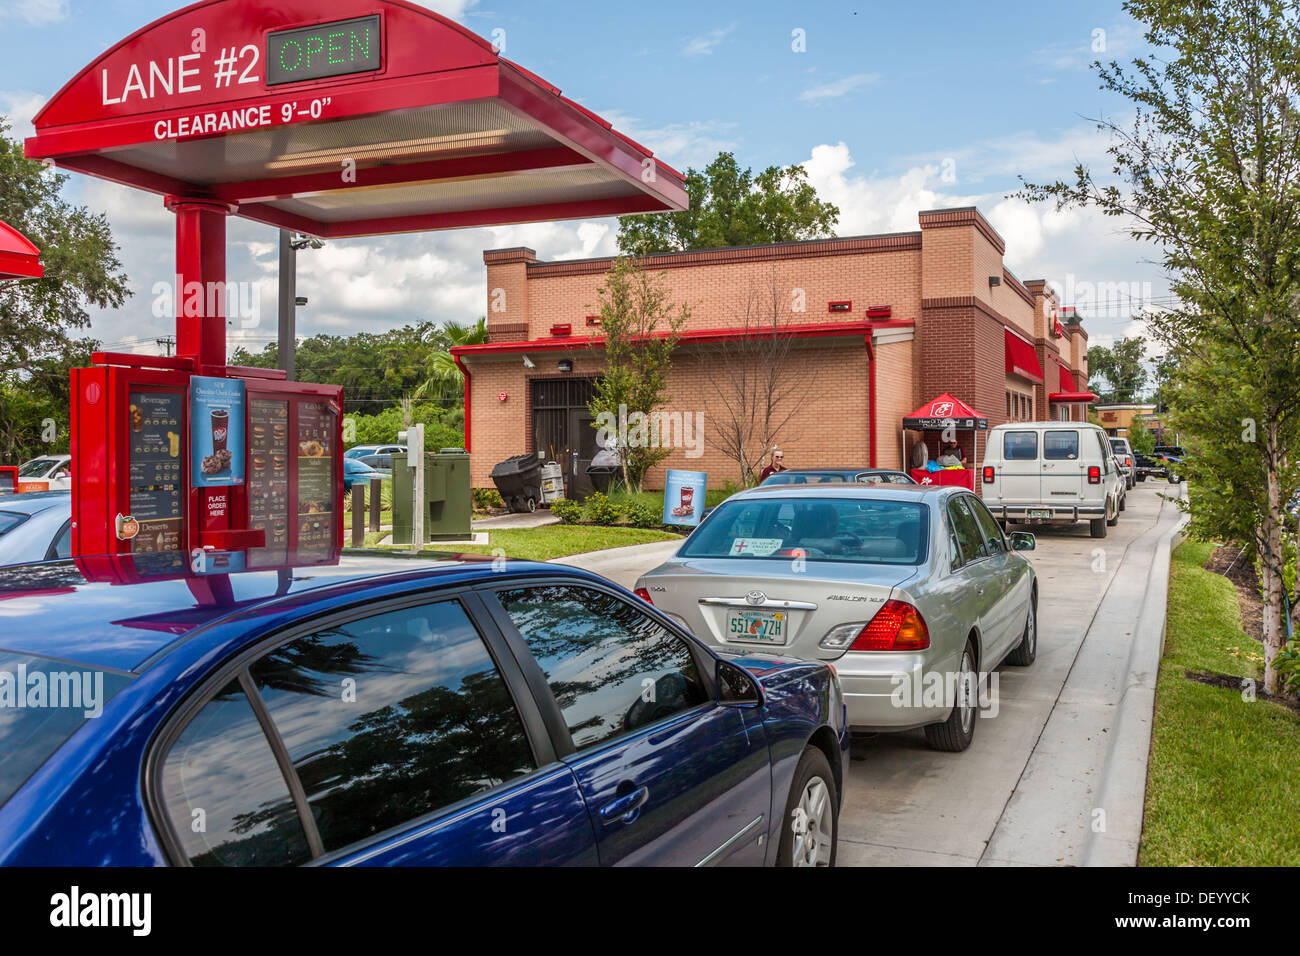 Cars lined up two wide at the Chick-fil-a fast food restaurant in Ocala, Florida in support of Christian values - Stock Image